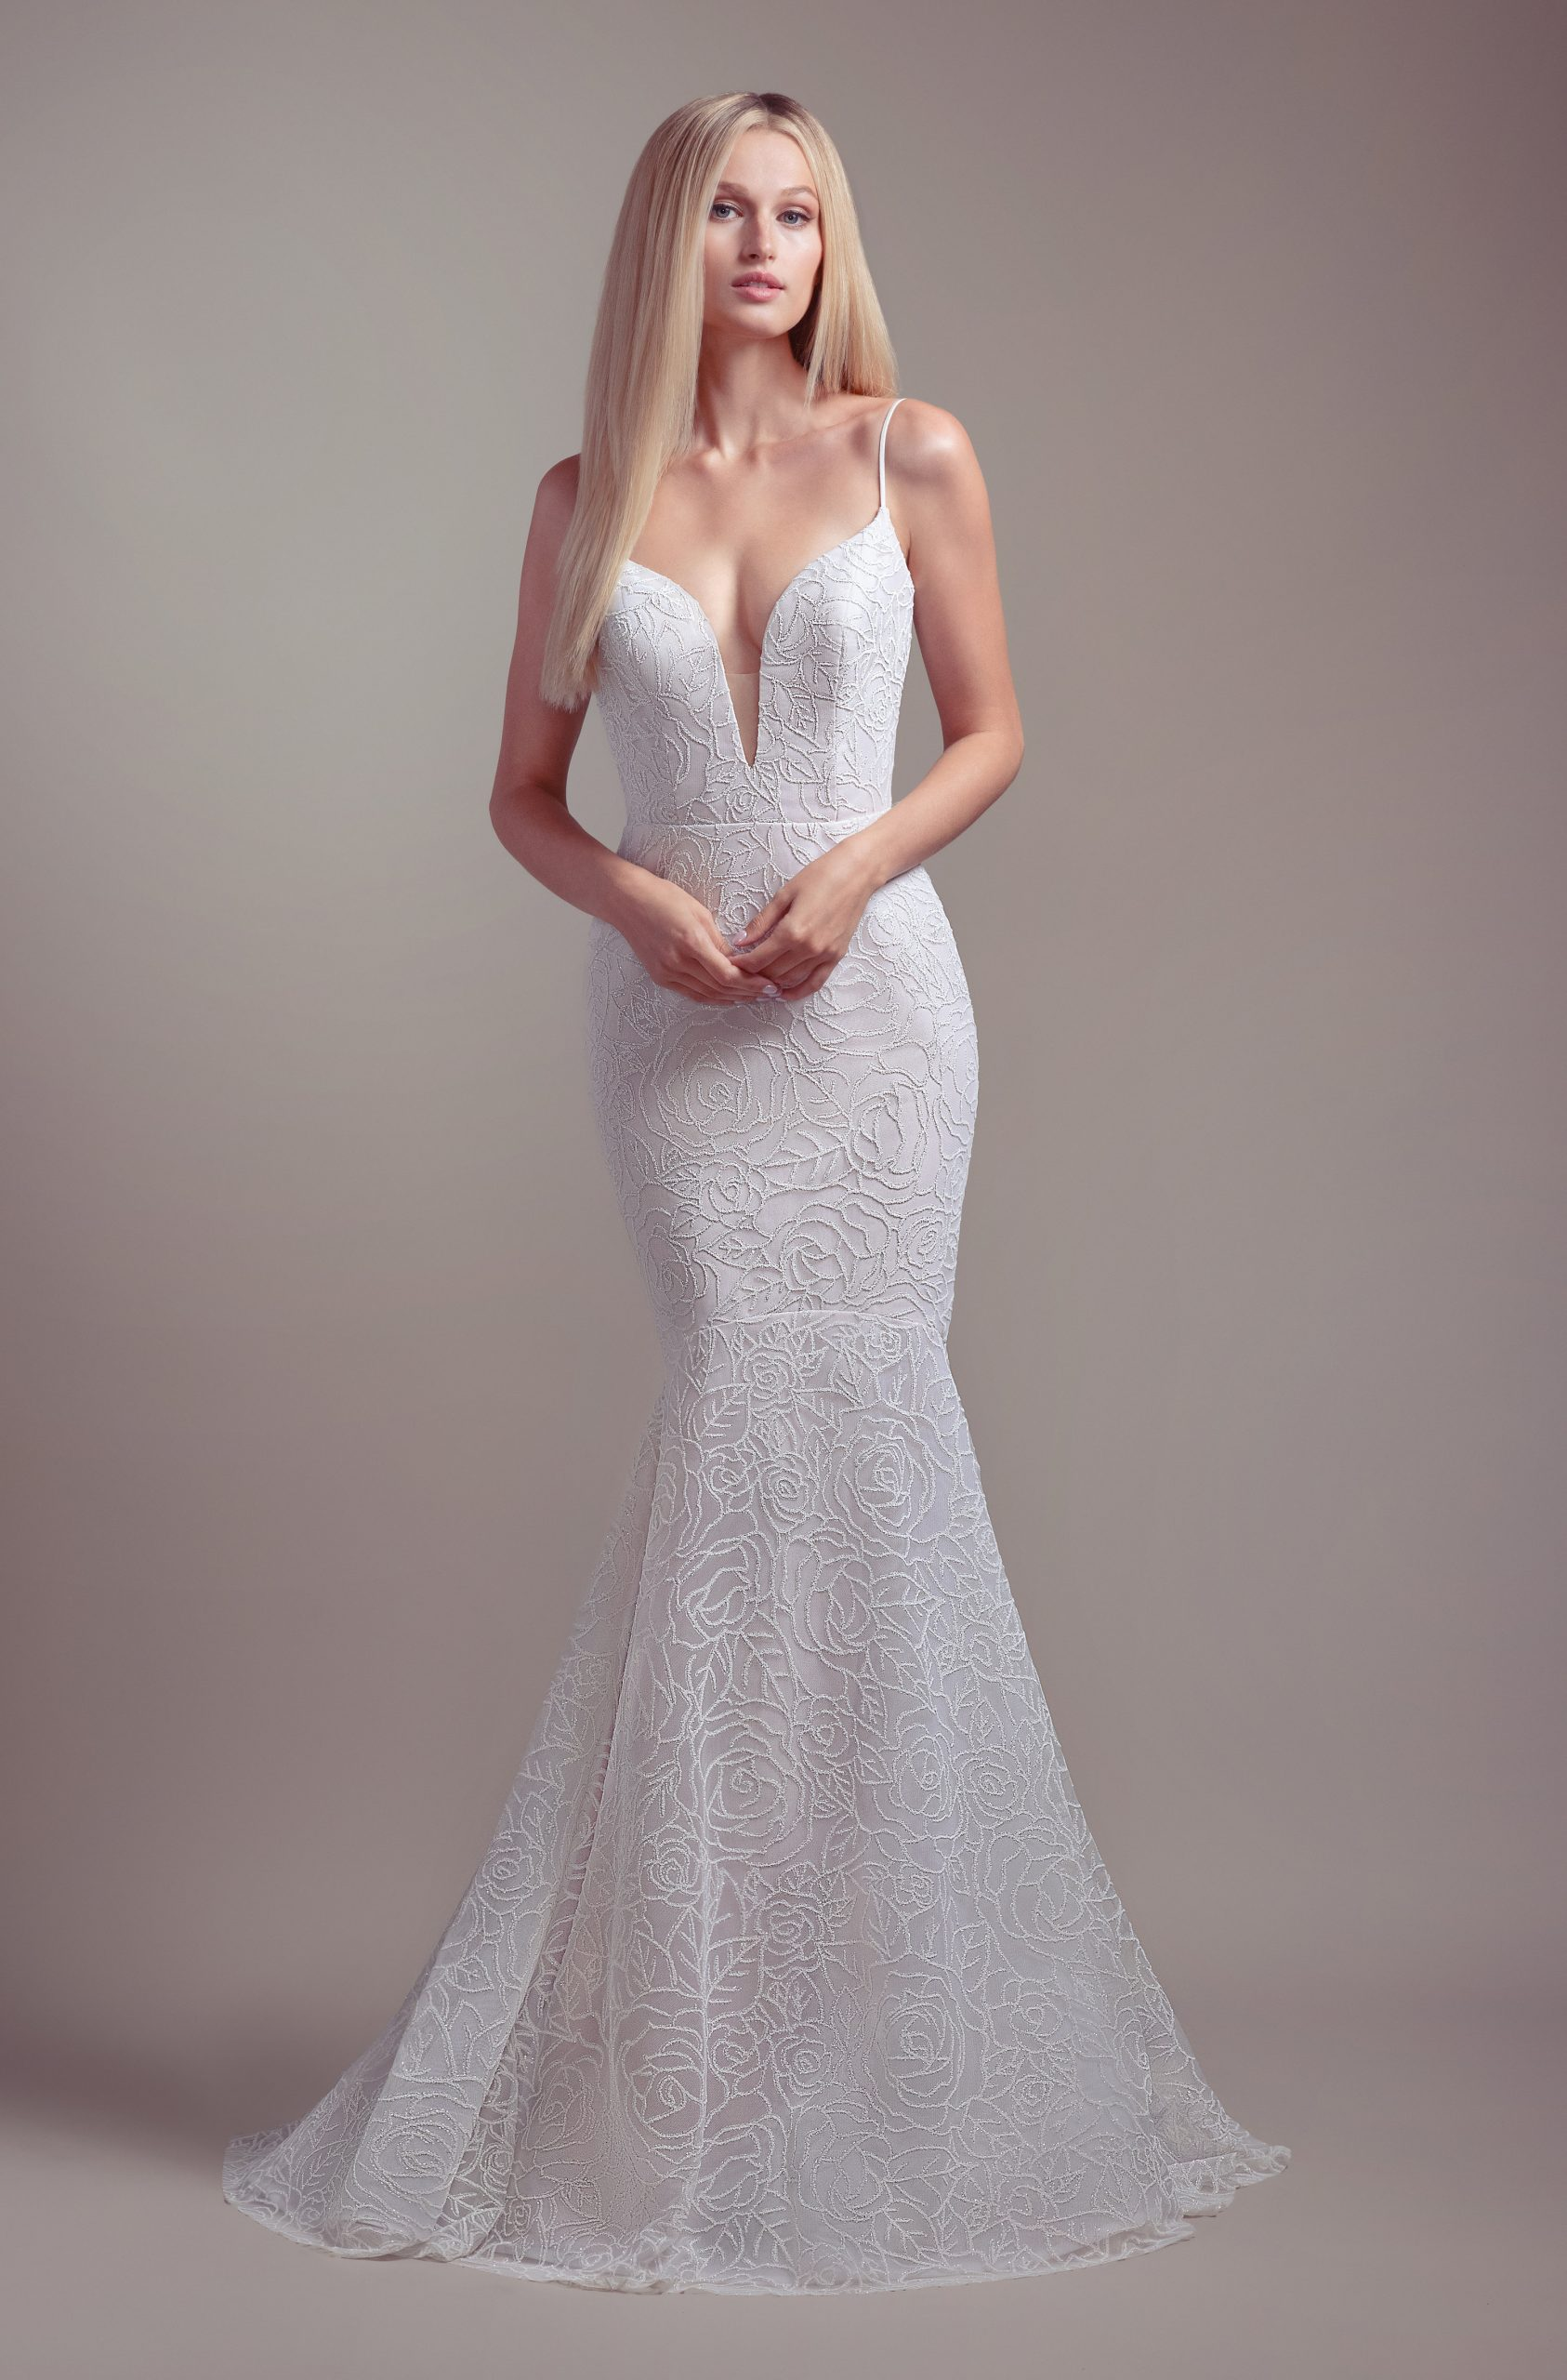 Plunging Sweetheart Neckline Spaghetti Strap Fit And Flare Wedding Dress Kleinfeld Bridal